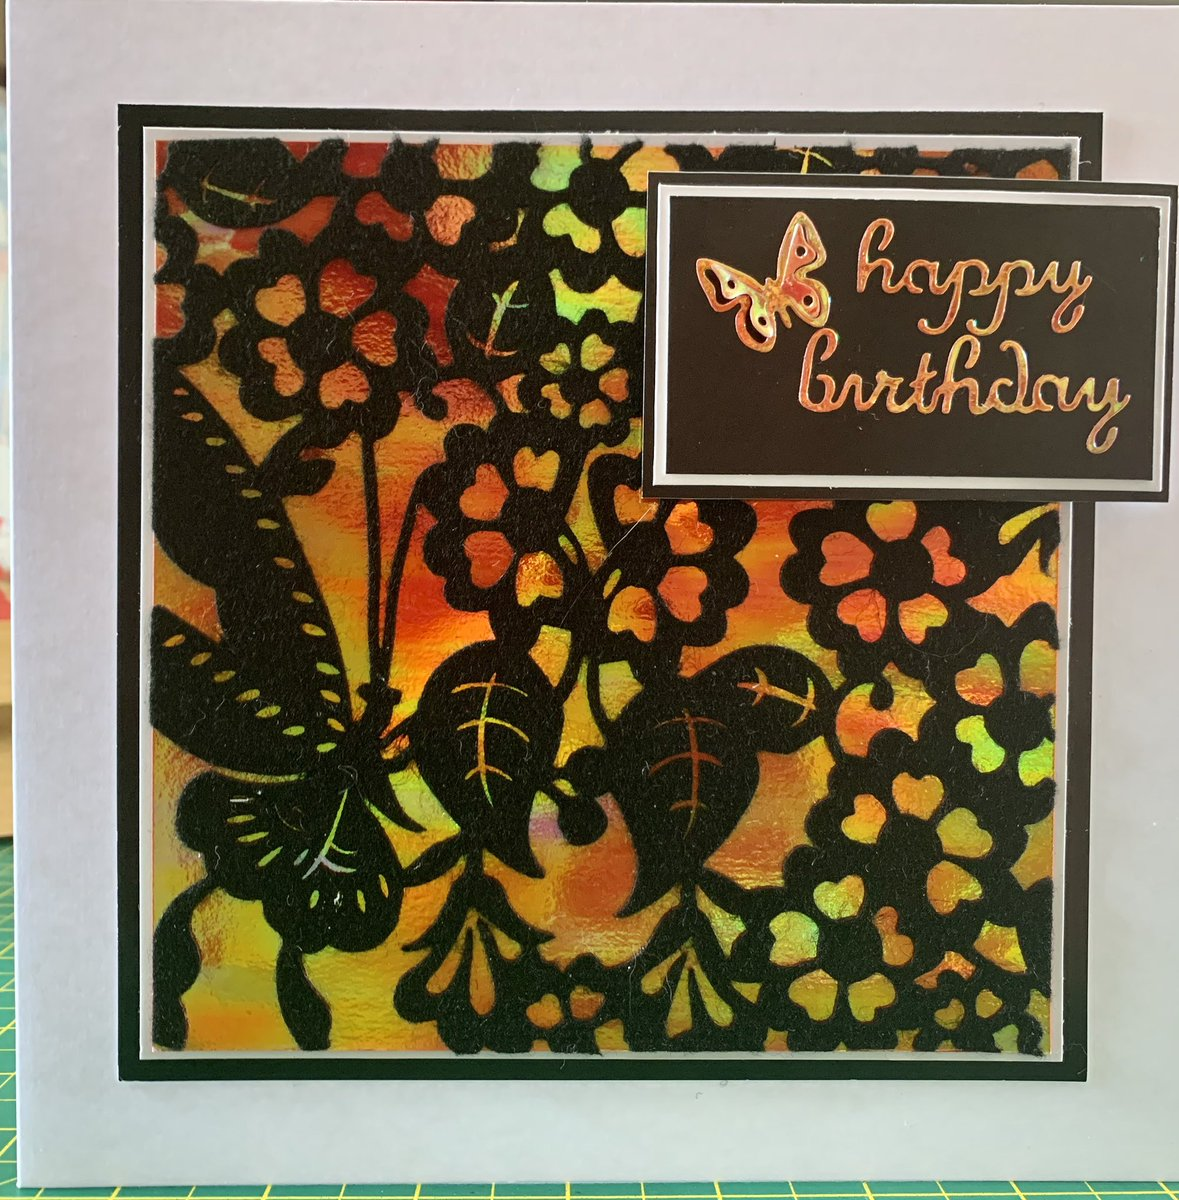 Local handmade cards for sale https://t.co/GGsc9jsiT1  #sarahsmanycards https://t.co/yMhEoYBmV7